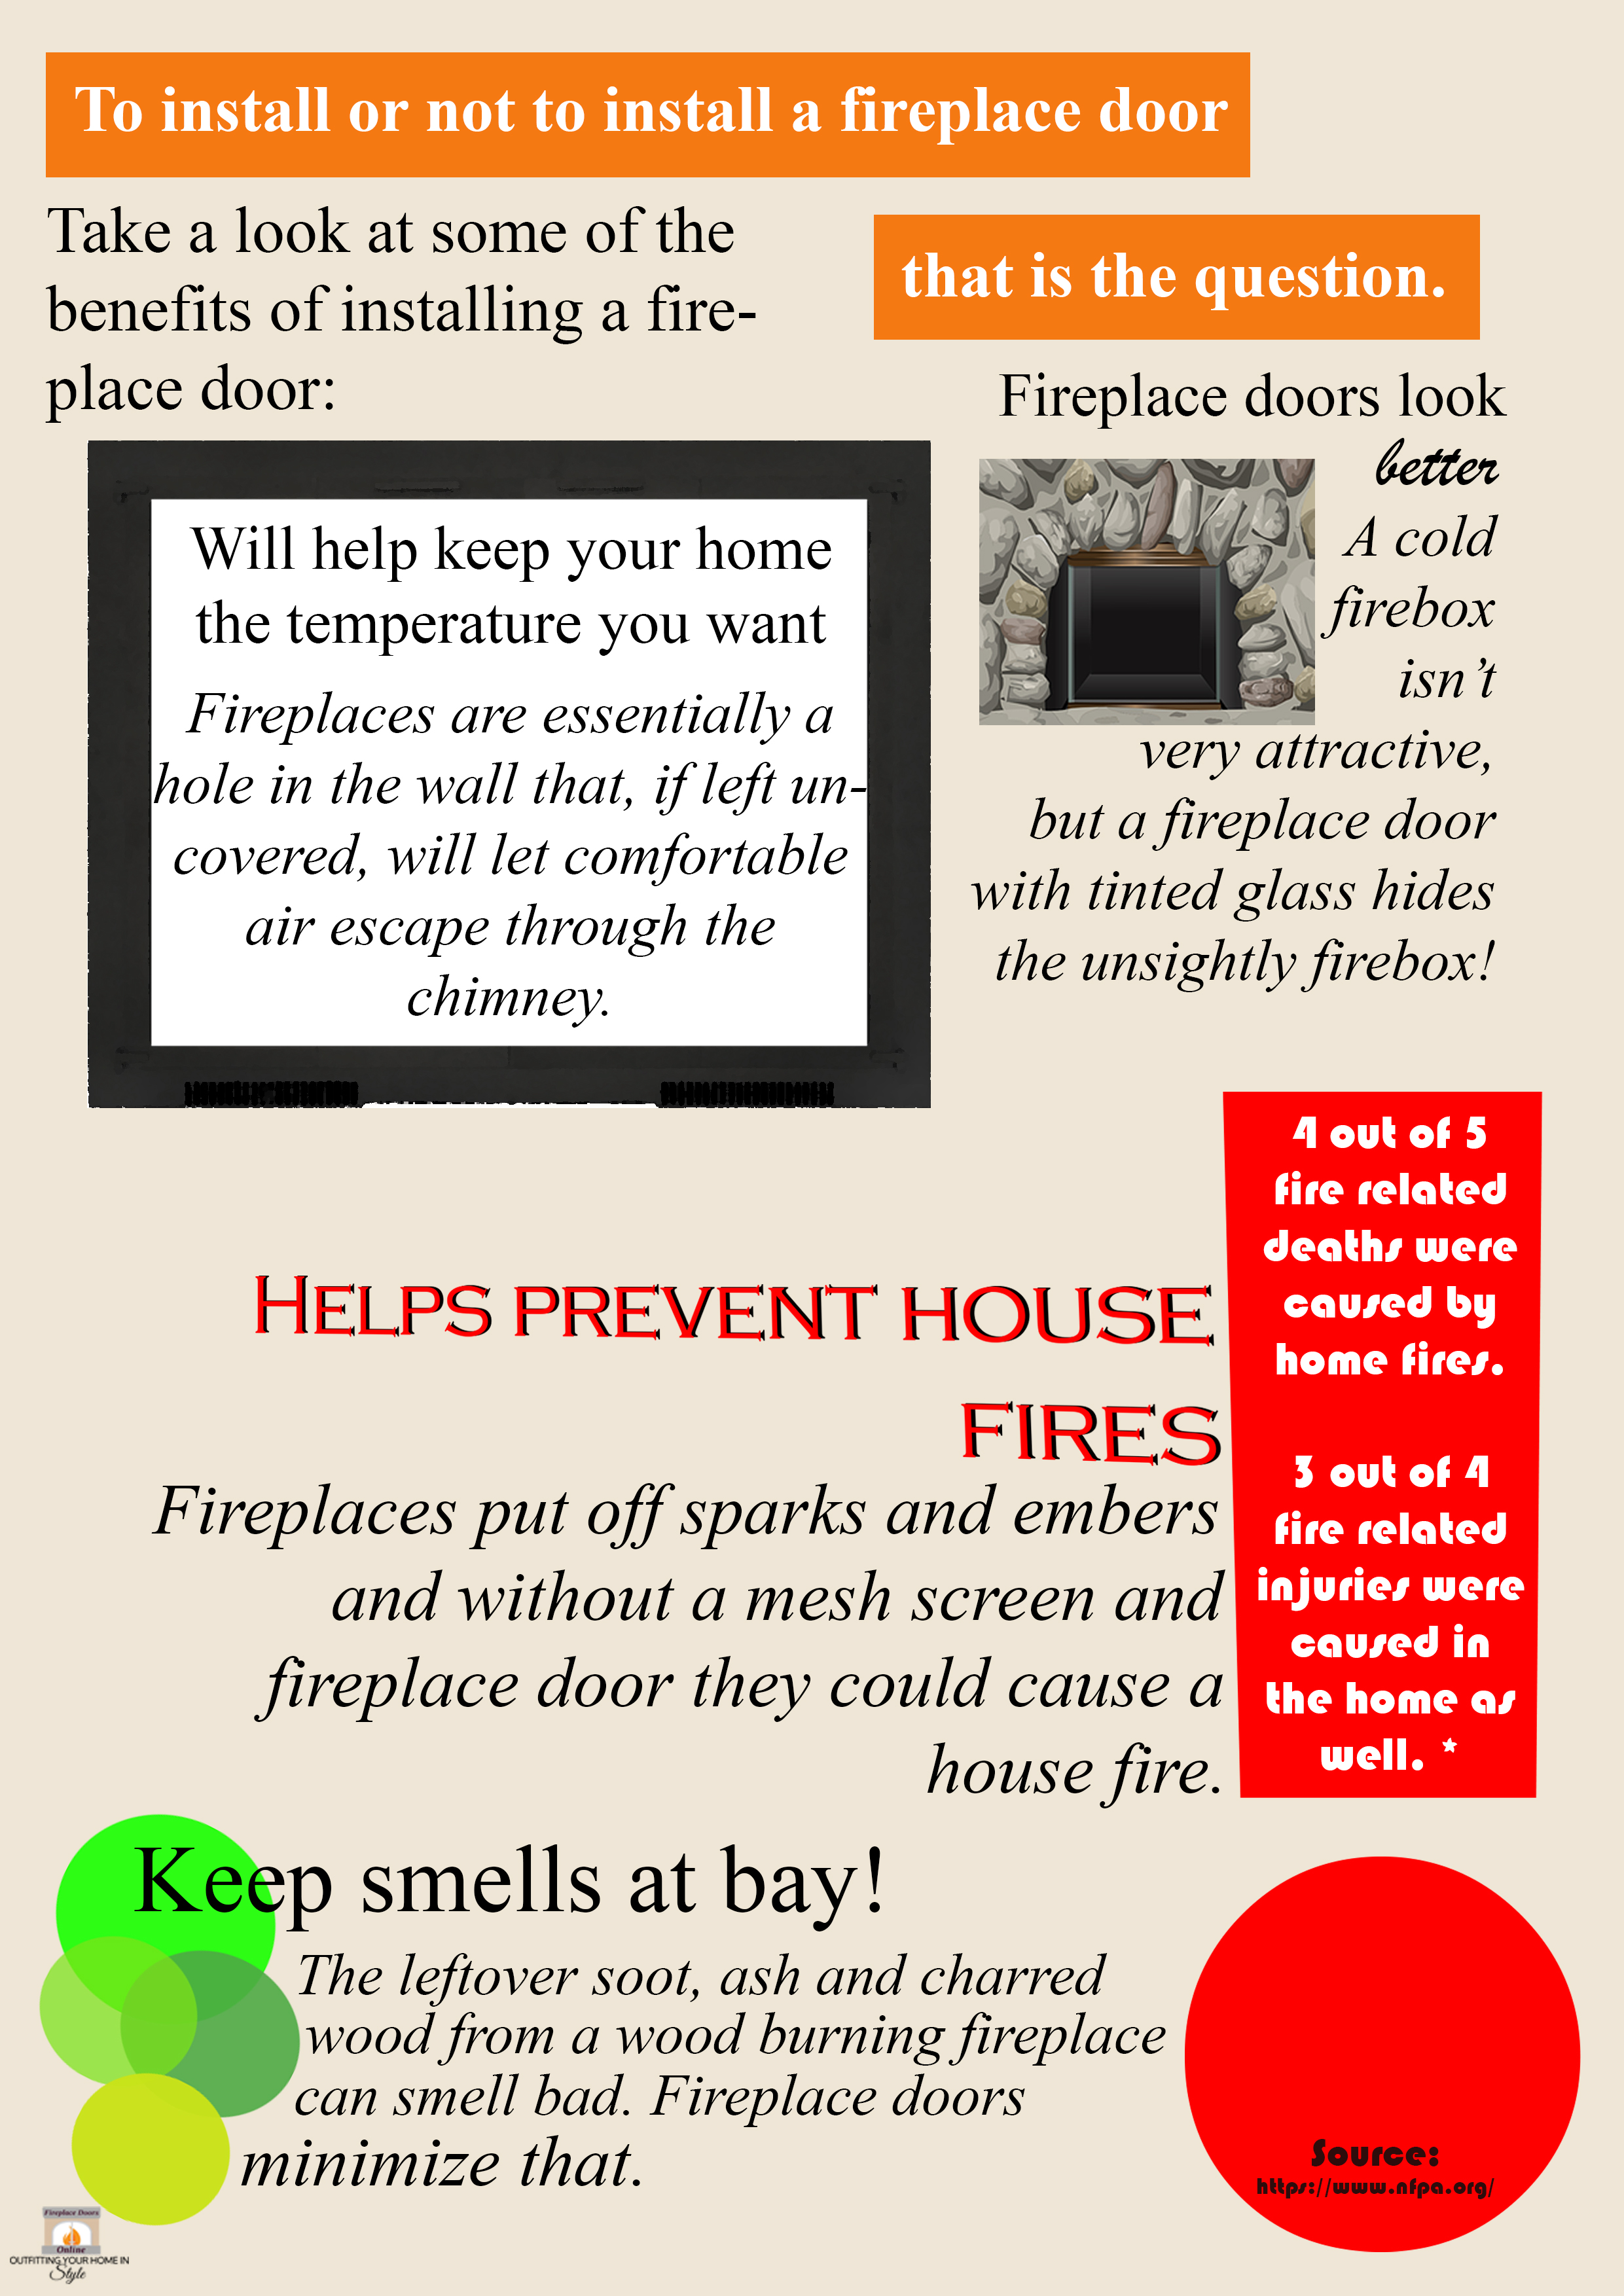 Benefits of a Fireplace Door